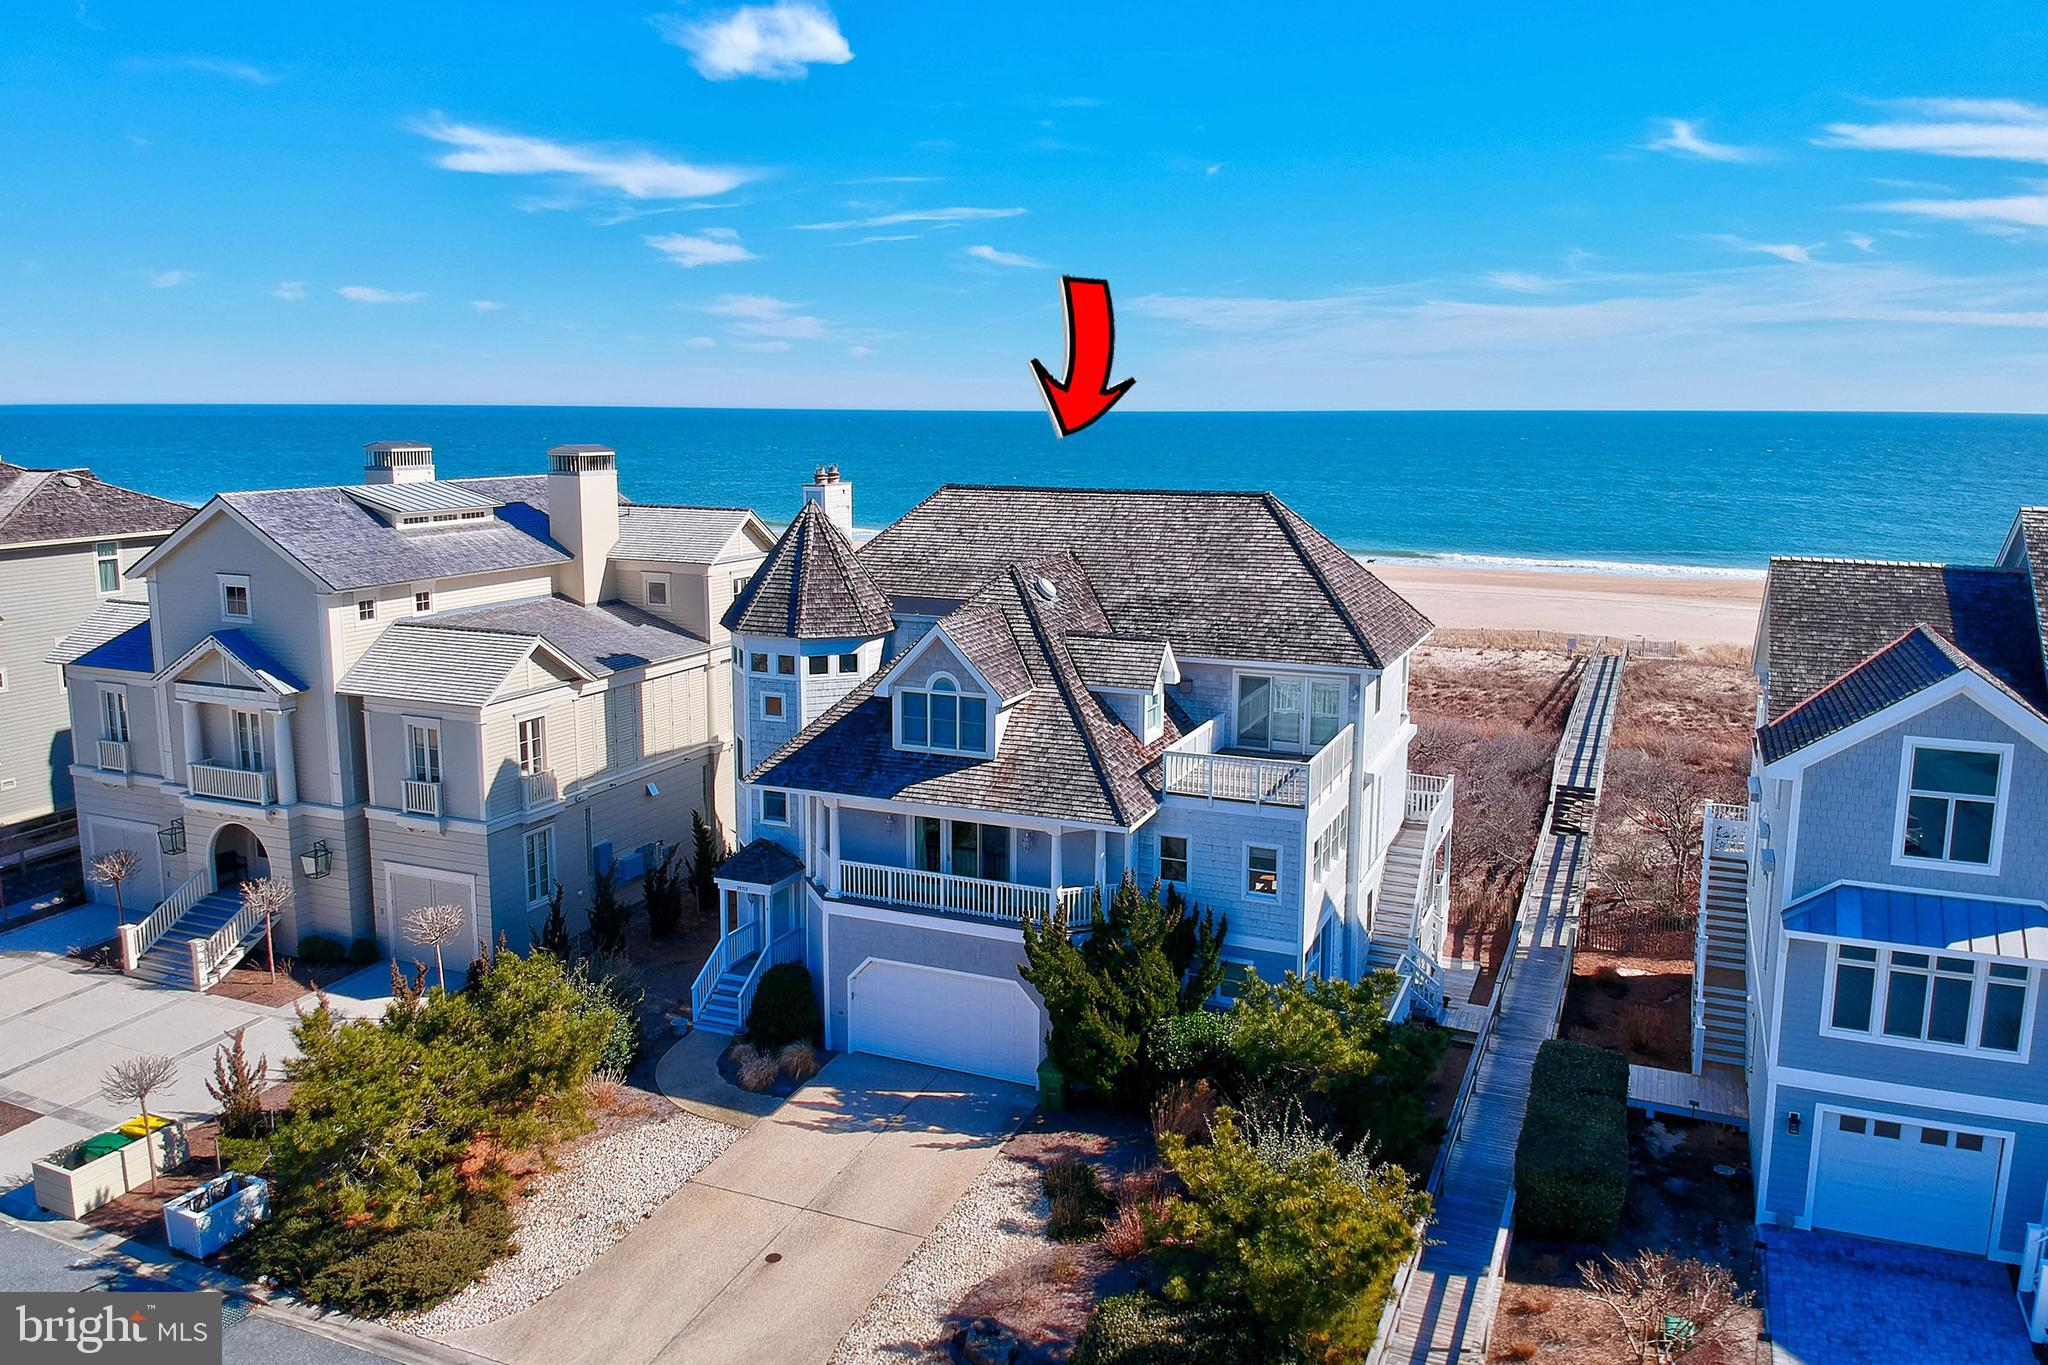 North Bethany OCEAN FRONT home located on a 75 foot lot in gated community with Pool.  A stunning spiral staircase leads you to a second floor open great room, with dining area, multiple sitting areas & panoramic ocean views!  Enjoy working remotely from your large home office with ocean views.  This gem offers direct access to private beach, Gourmet kitchen, elevator, 3 gas fireplaces,  oversized screen porch & multiple decks overlooking the ocean,   master bedroom with  private deck for you to watch the sun rise & sunset,  ALL bedrooms have private full baths.  The ground level has two wonderful ocean front bedrooms, family room & game area, wet bar & fireplace.  This community offers a community pool and is with in walking distance to the town of Bethany Beach.